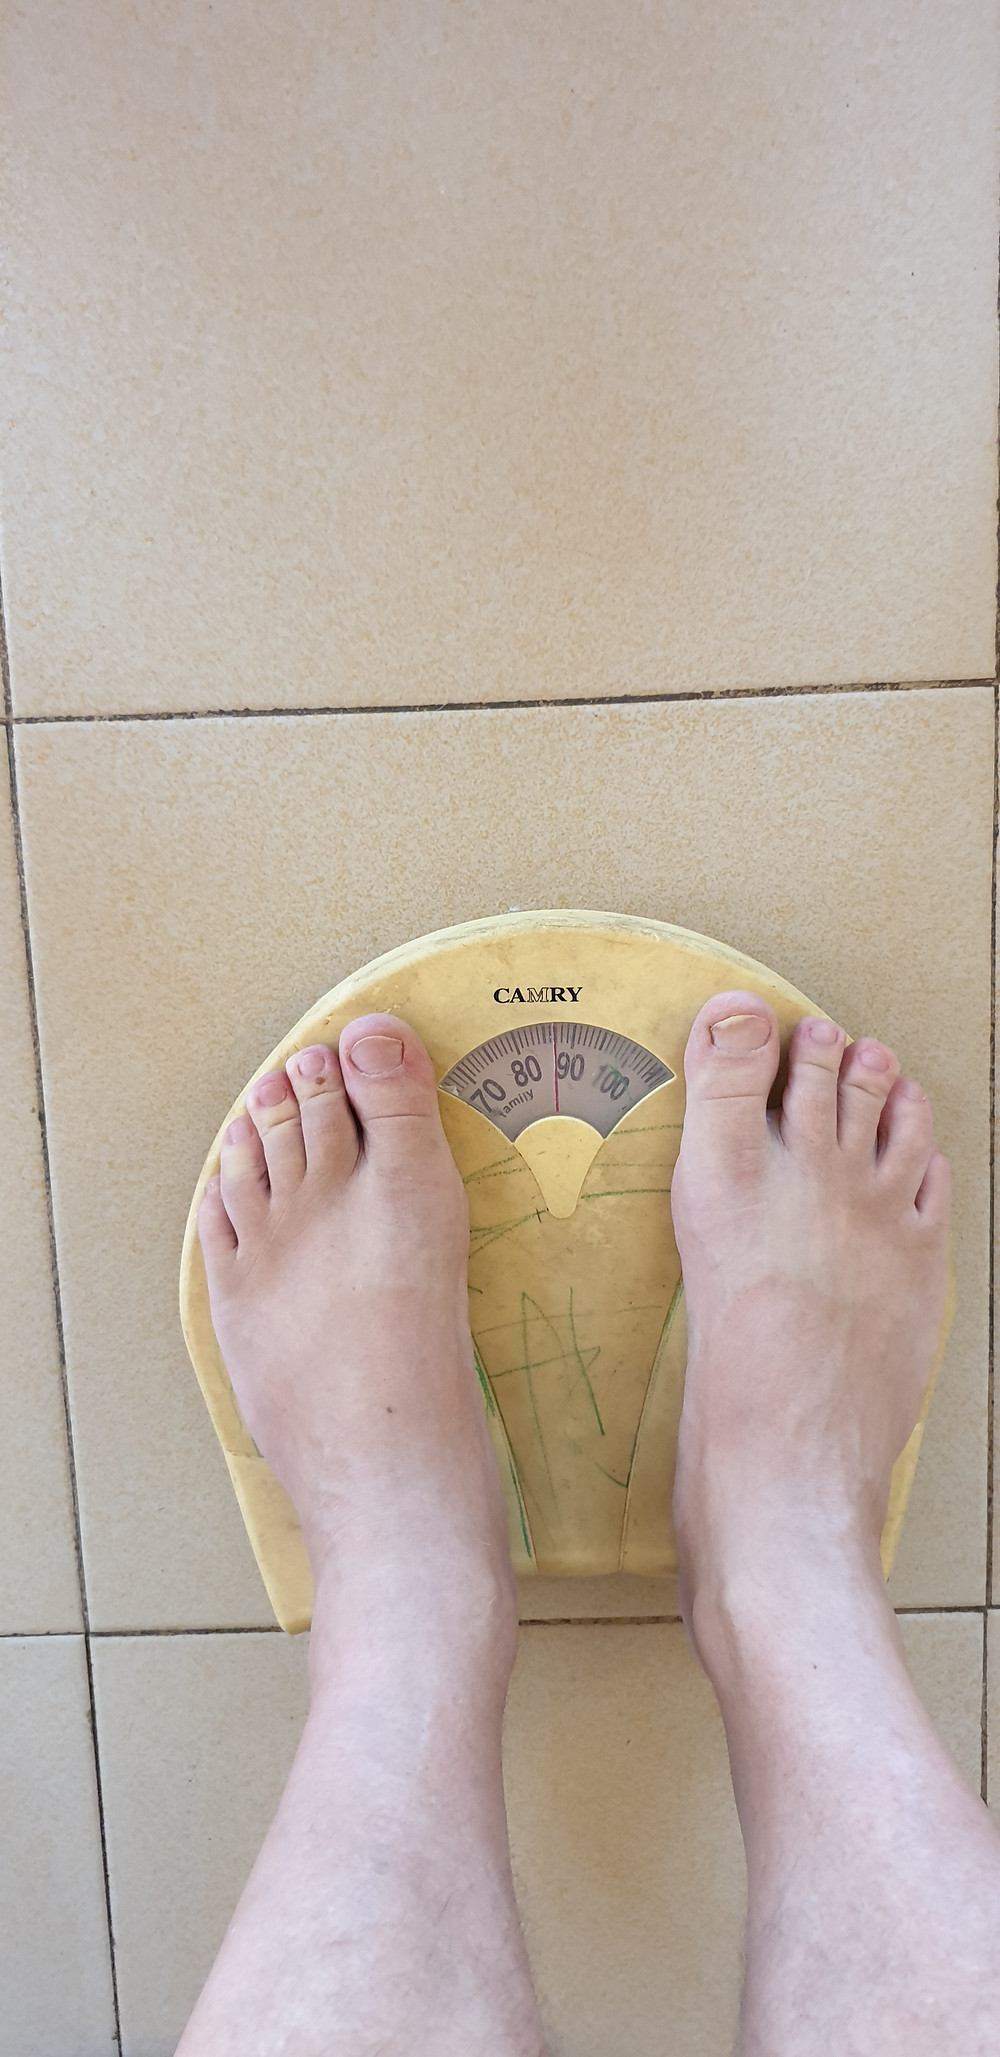 My father [ 79 years ] now weighs 116 kg., I want to avoid that.